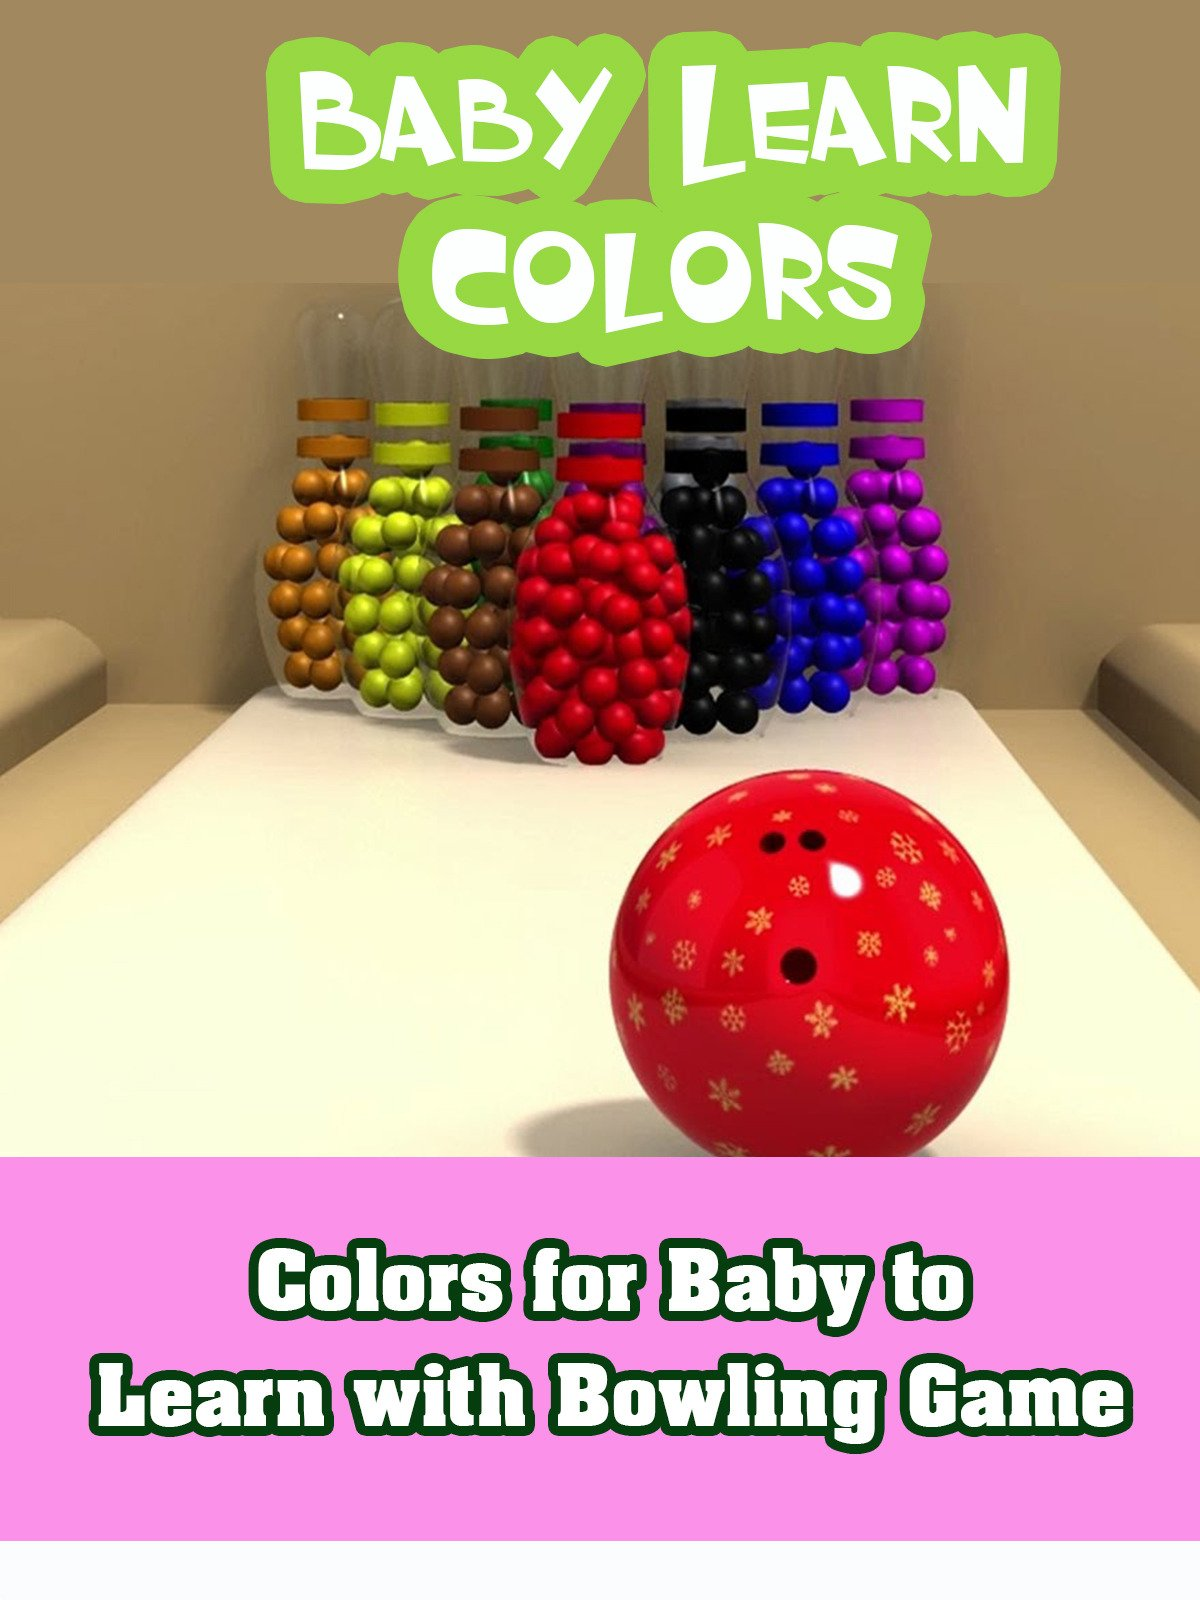 Colors for Baby to Learn with Bowling Game